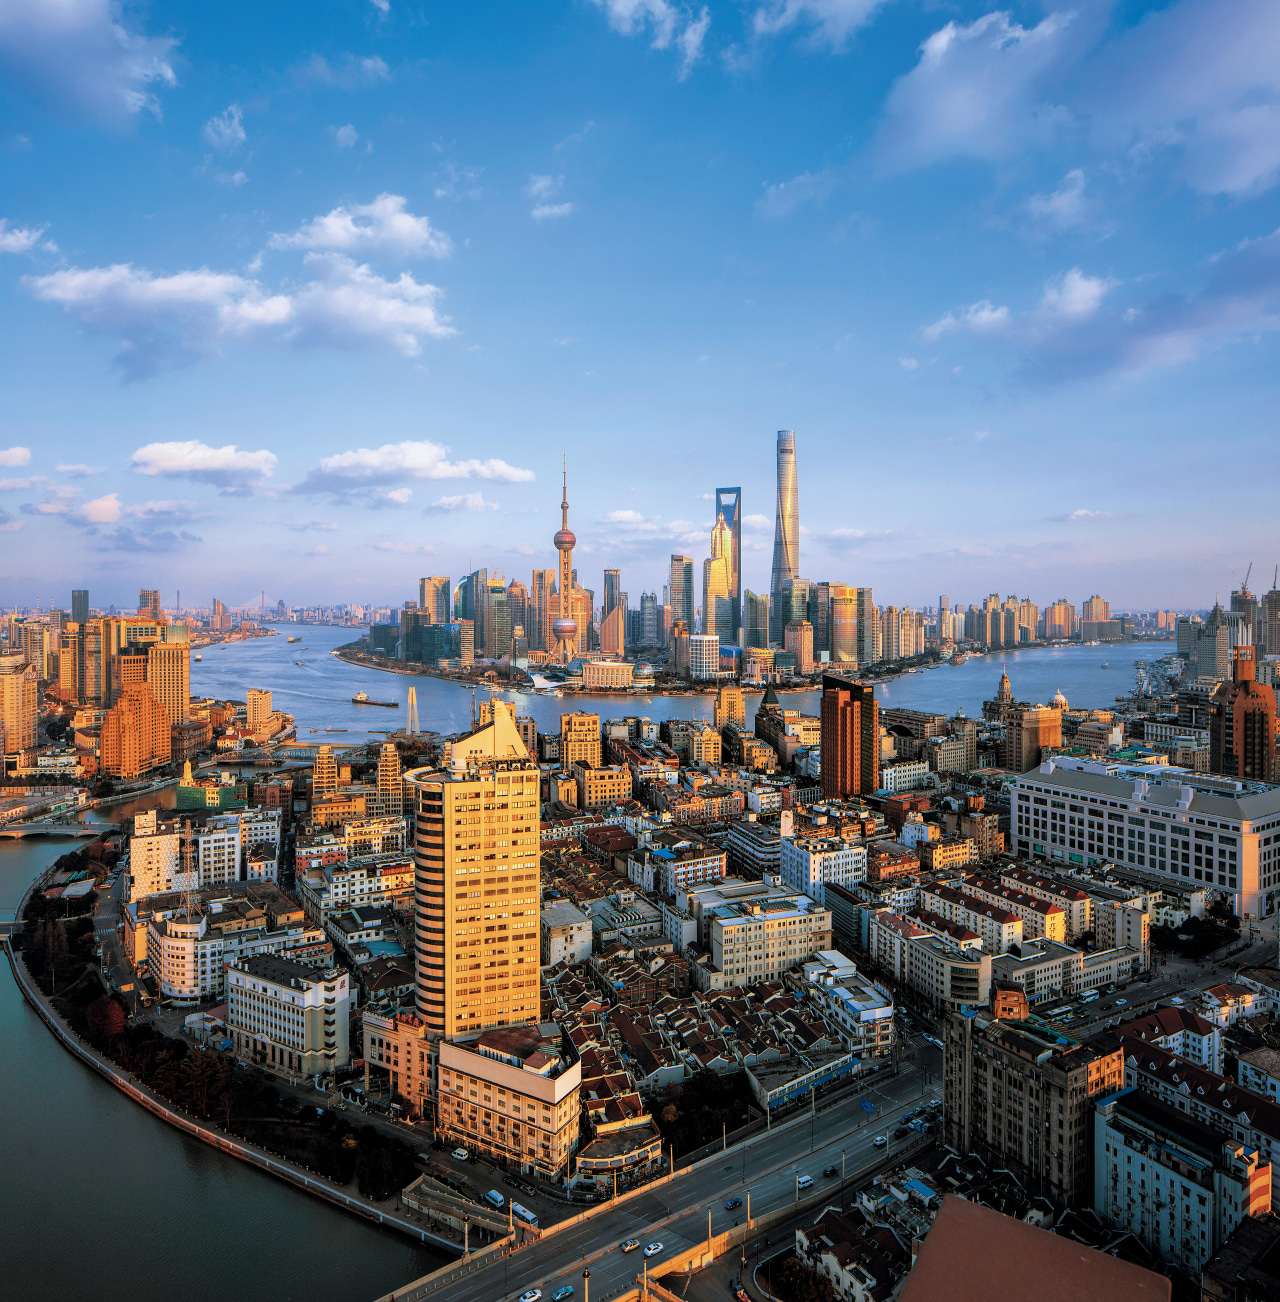 The Shanghai Tower became Chinas tallest and the aerial photography, bird's eye view, building, city, cityscape, daytime, downtown, horizon, landmark, metropolis, metropolitan area, reflection, sky, skyline, skyscraper, tower, tower block, urban area, teal, black